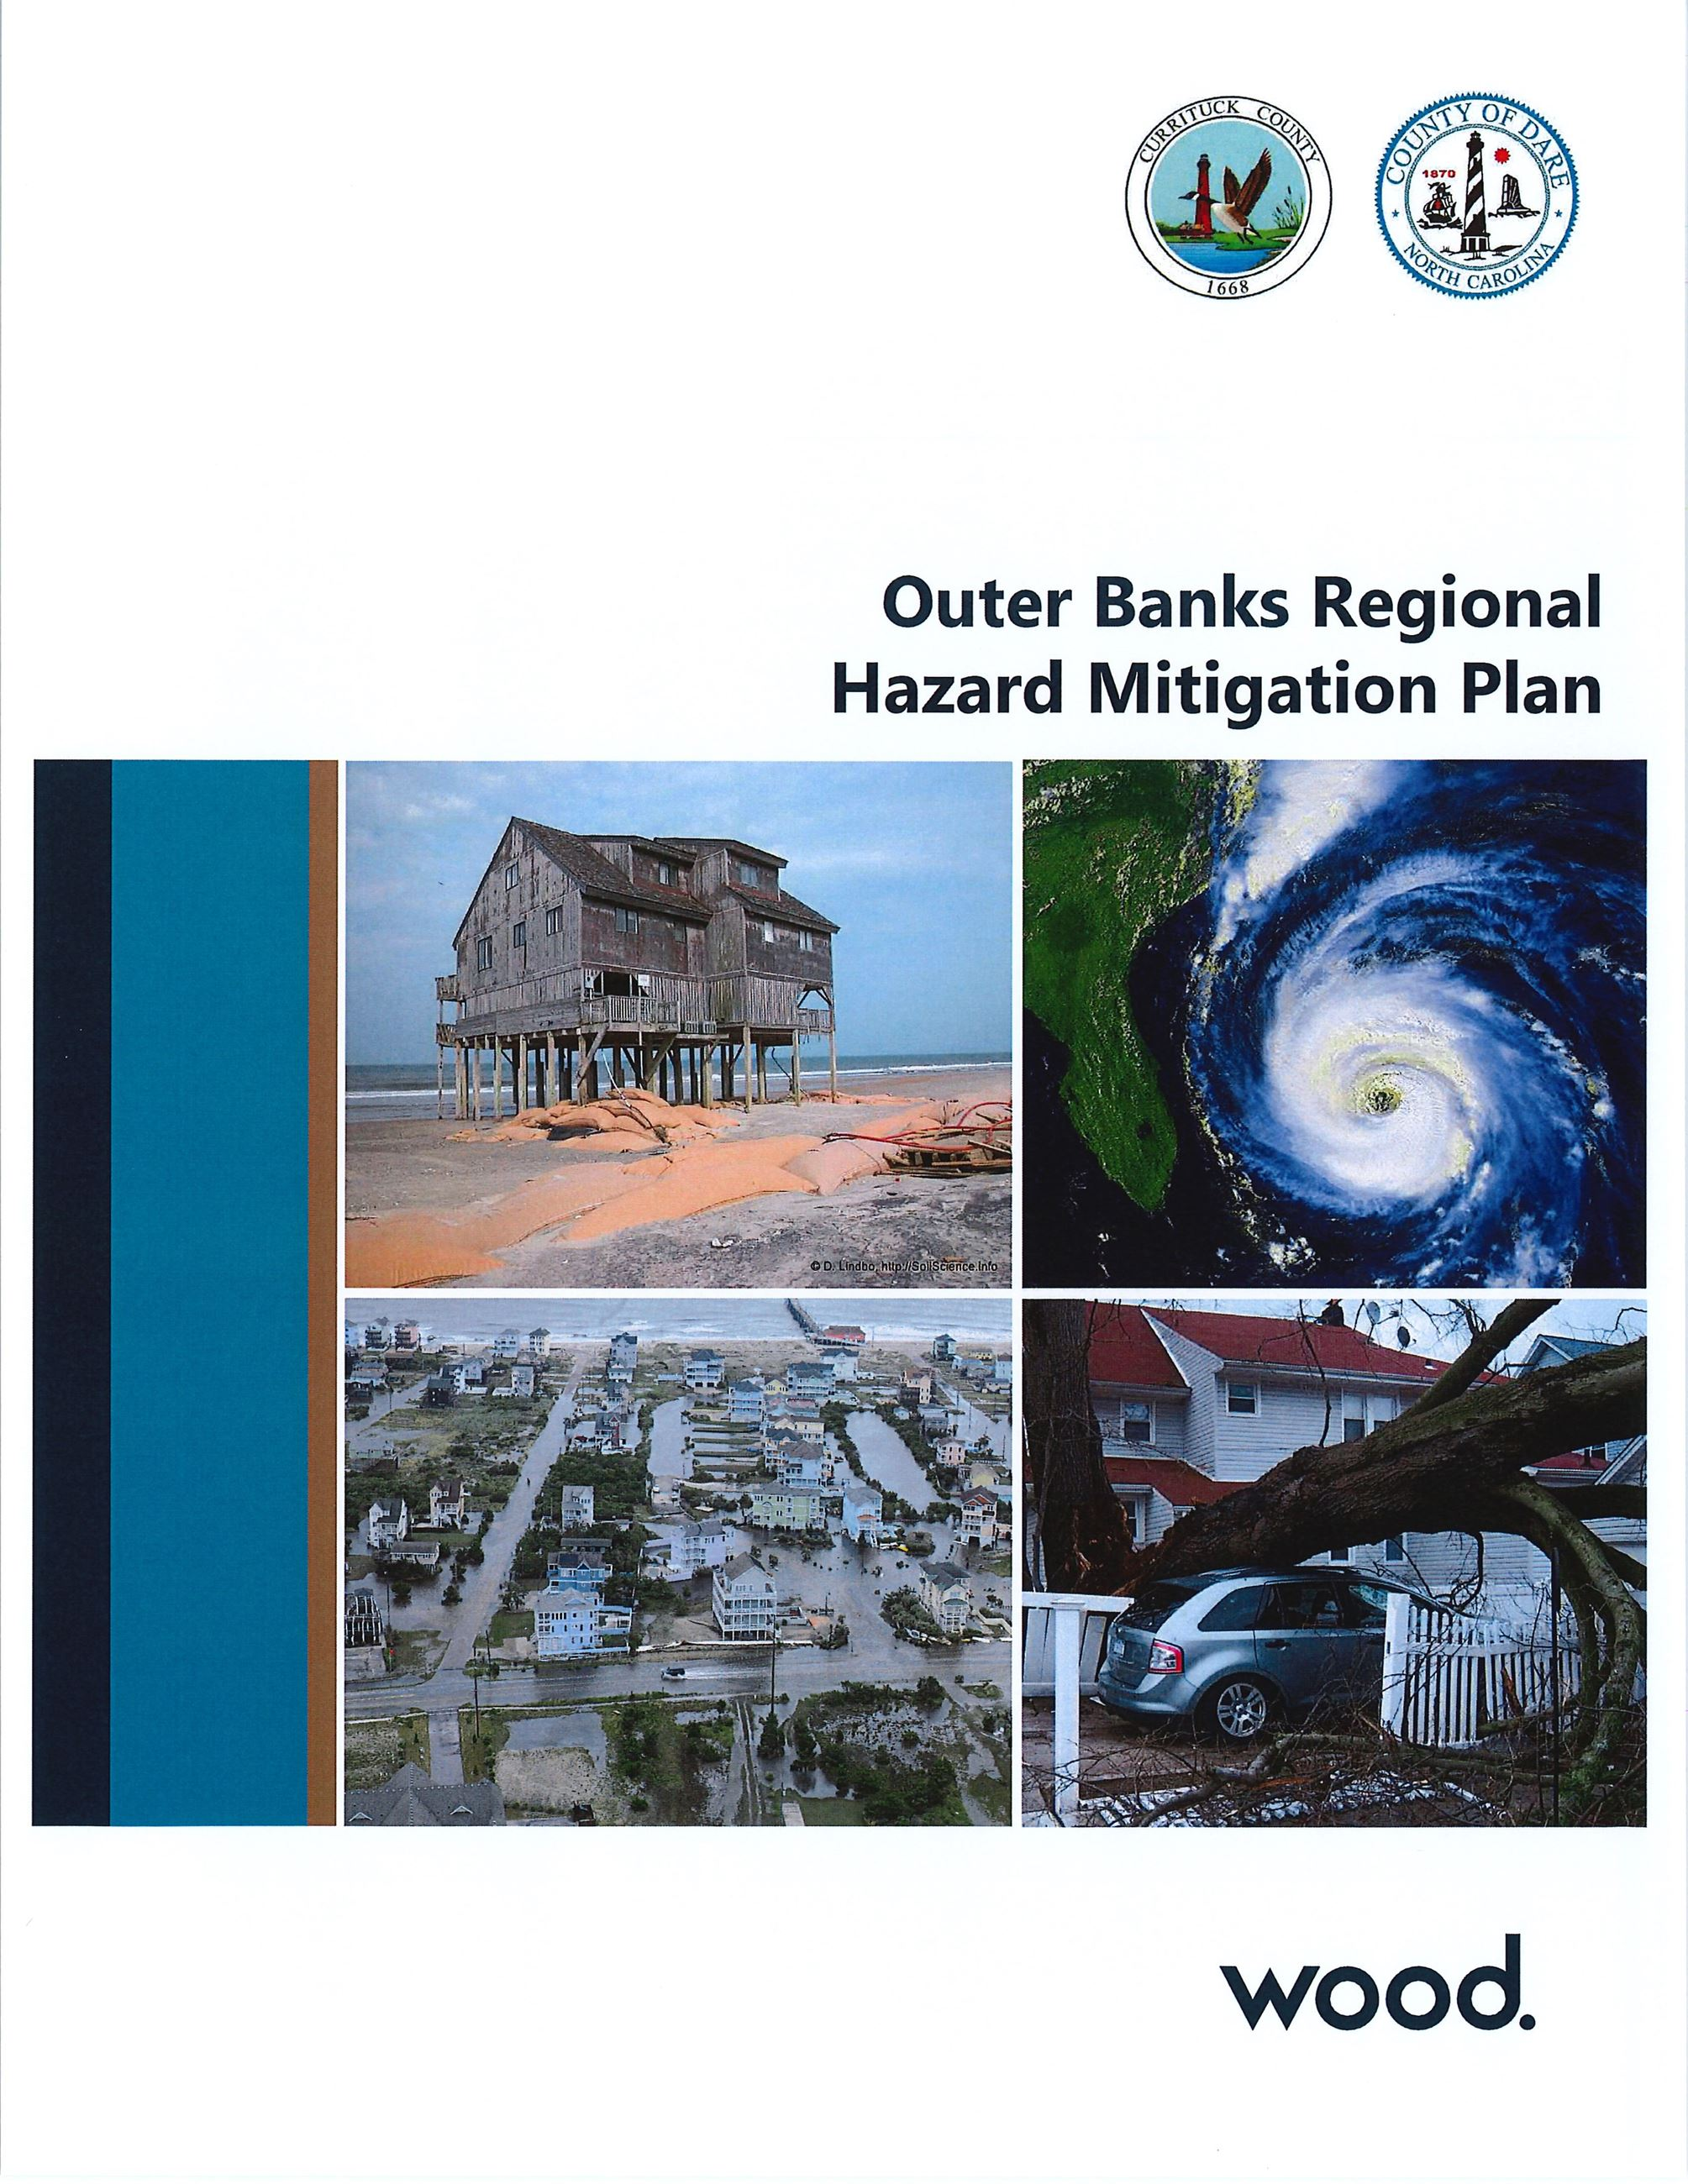 Outer Banks Regional Hazard Mitigation Plan cover page